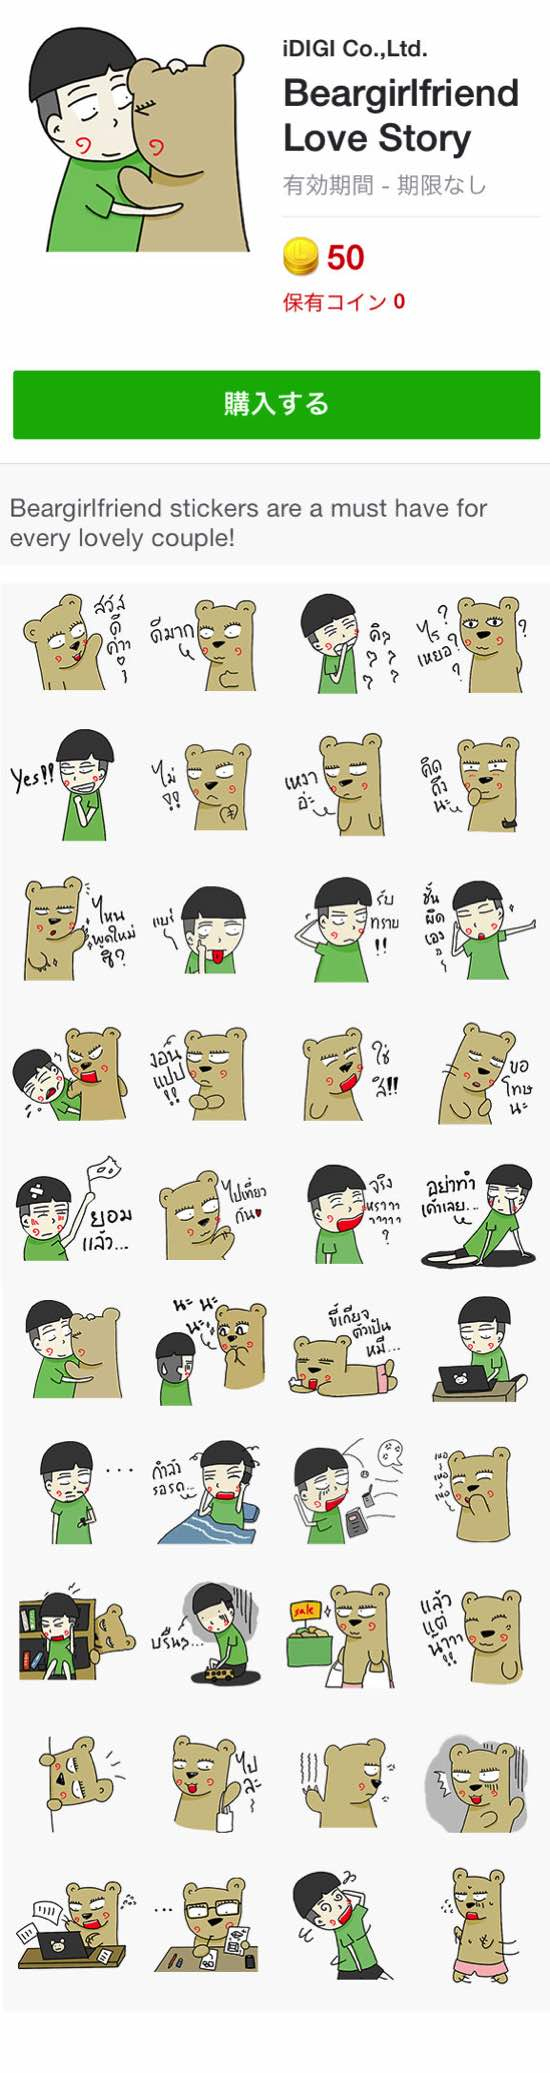 タイのLINEスタンプ Beargirlfriend Love Story / iDIGI Co.,Ltd.